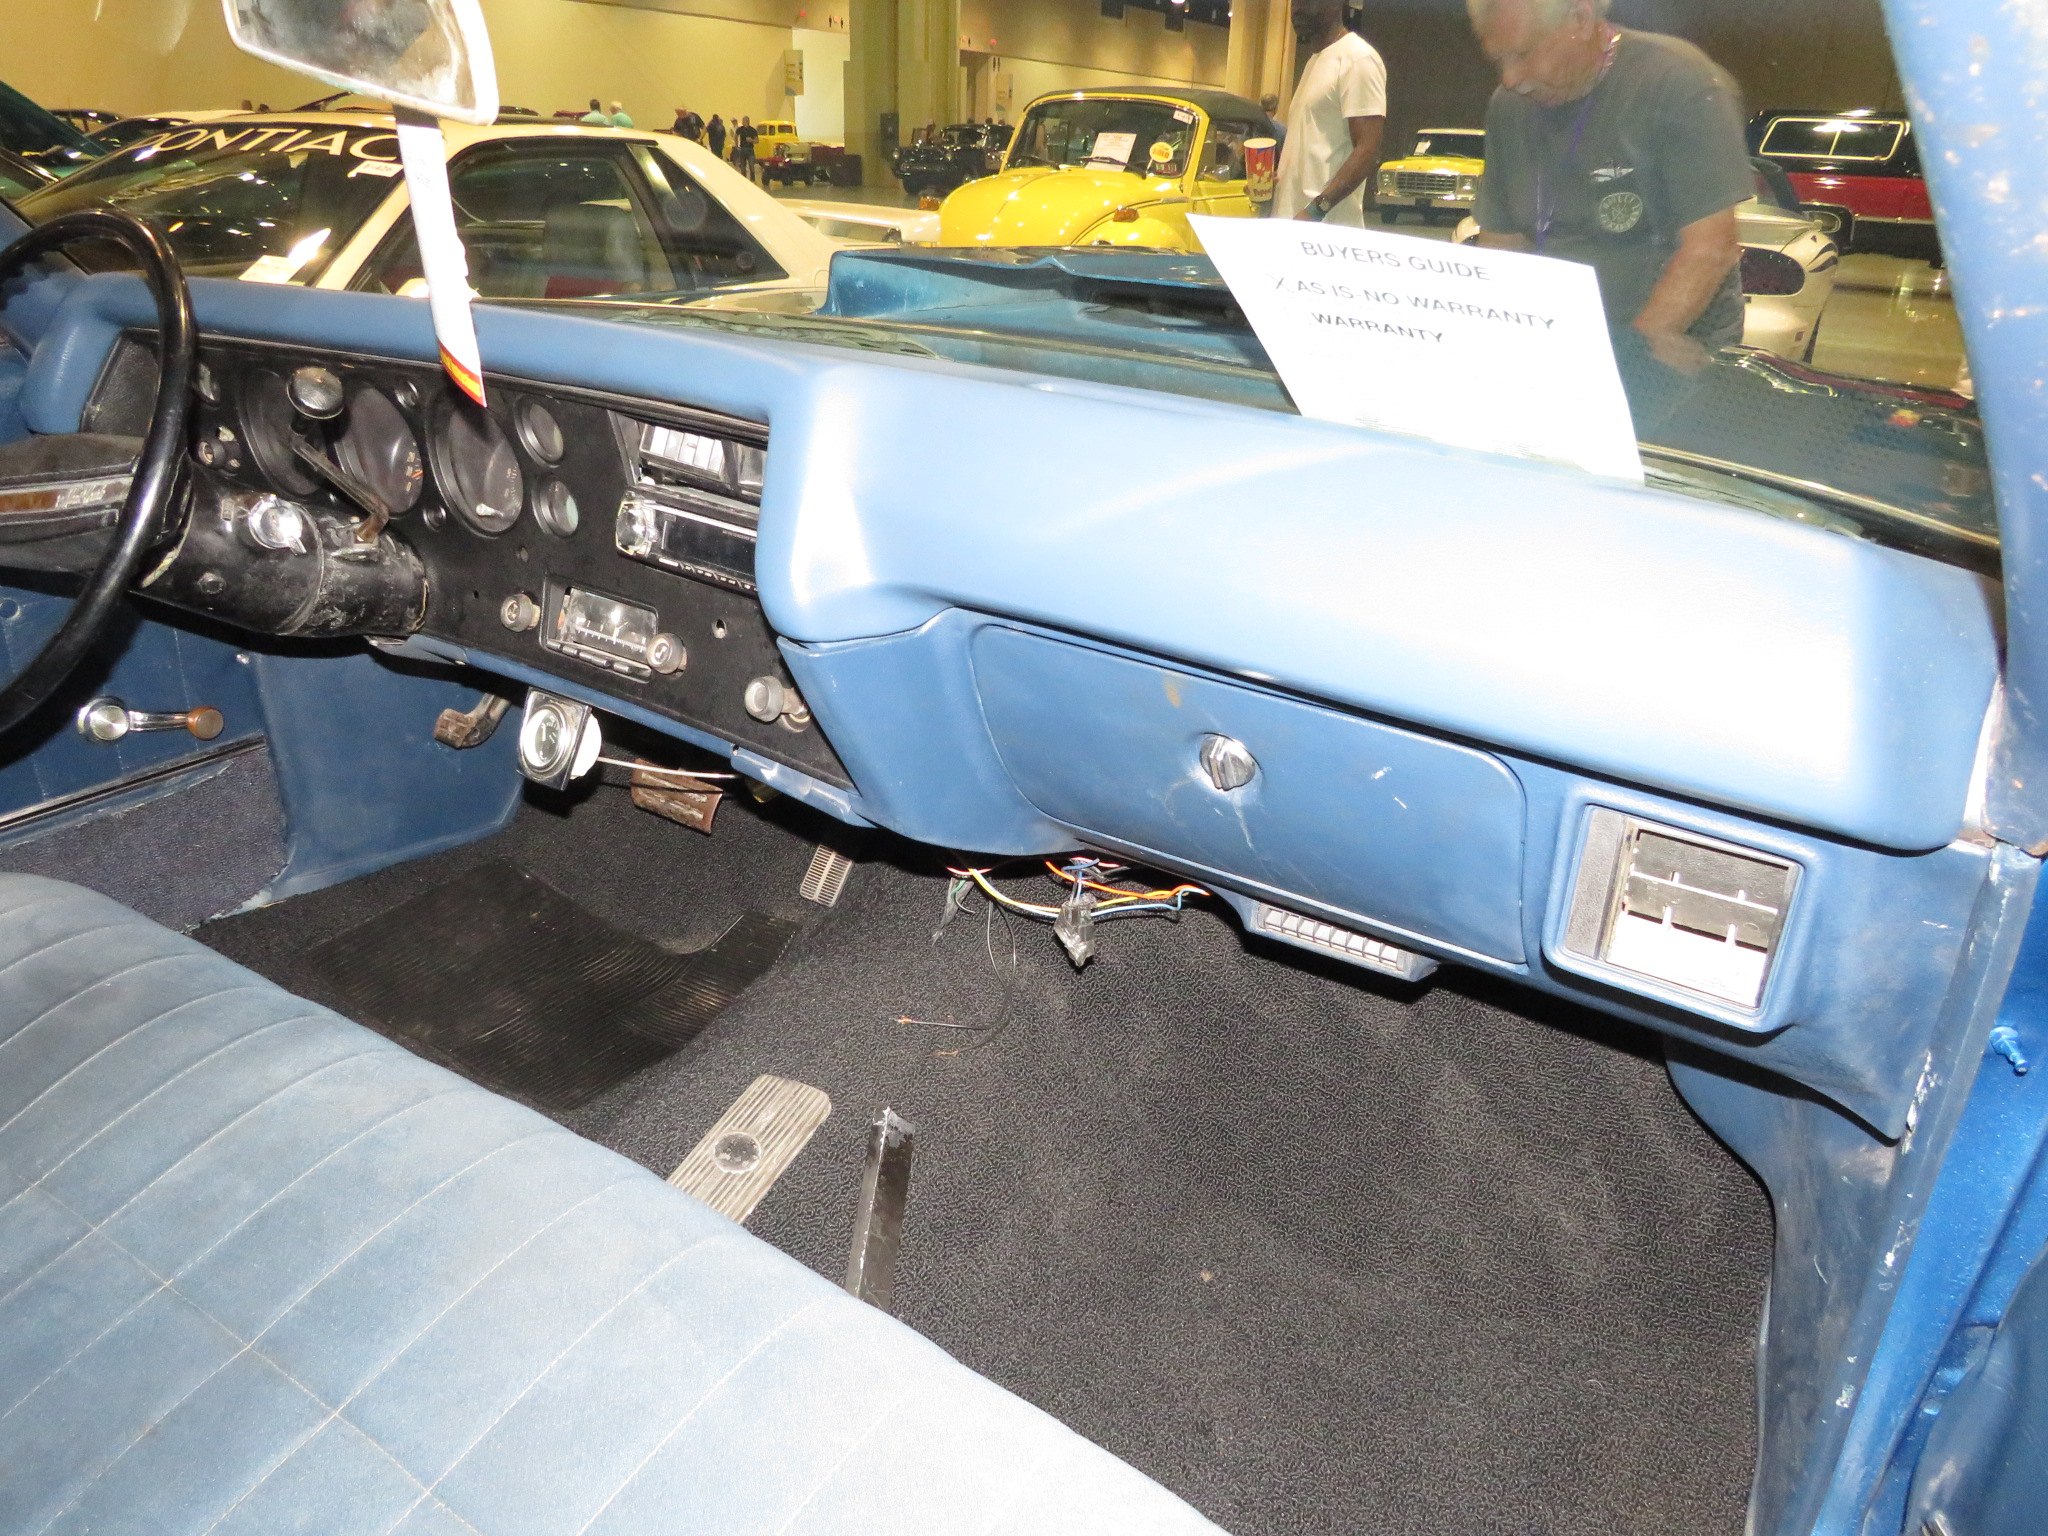 5th Image of a 1971 CHEVROLET MONTE CARLO